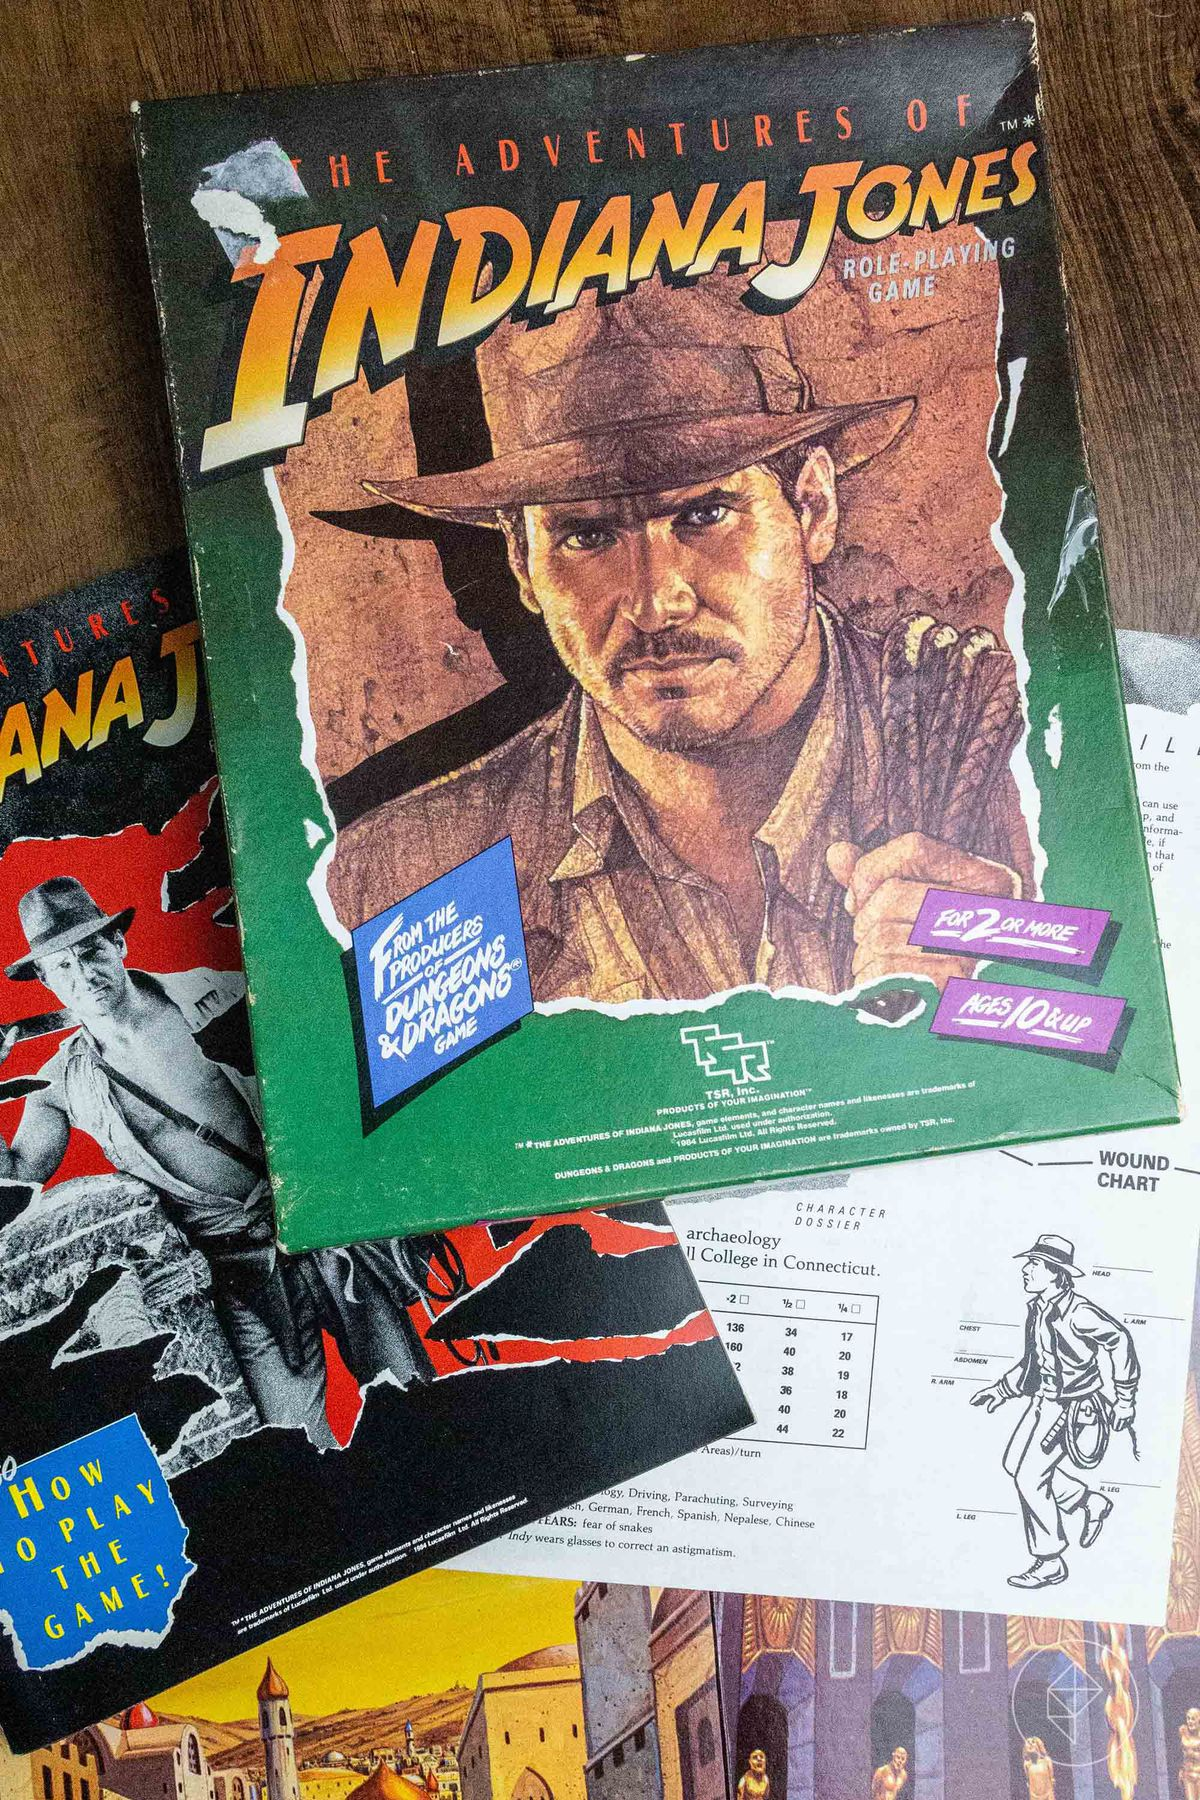 The Adventures of Indiana Jones Role-playing Game, including the character card for Indy himself.